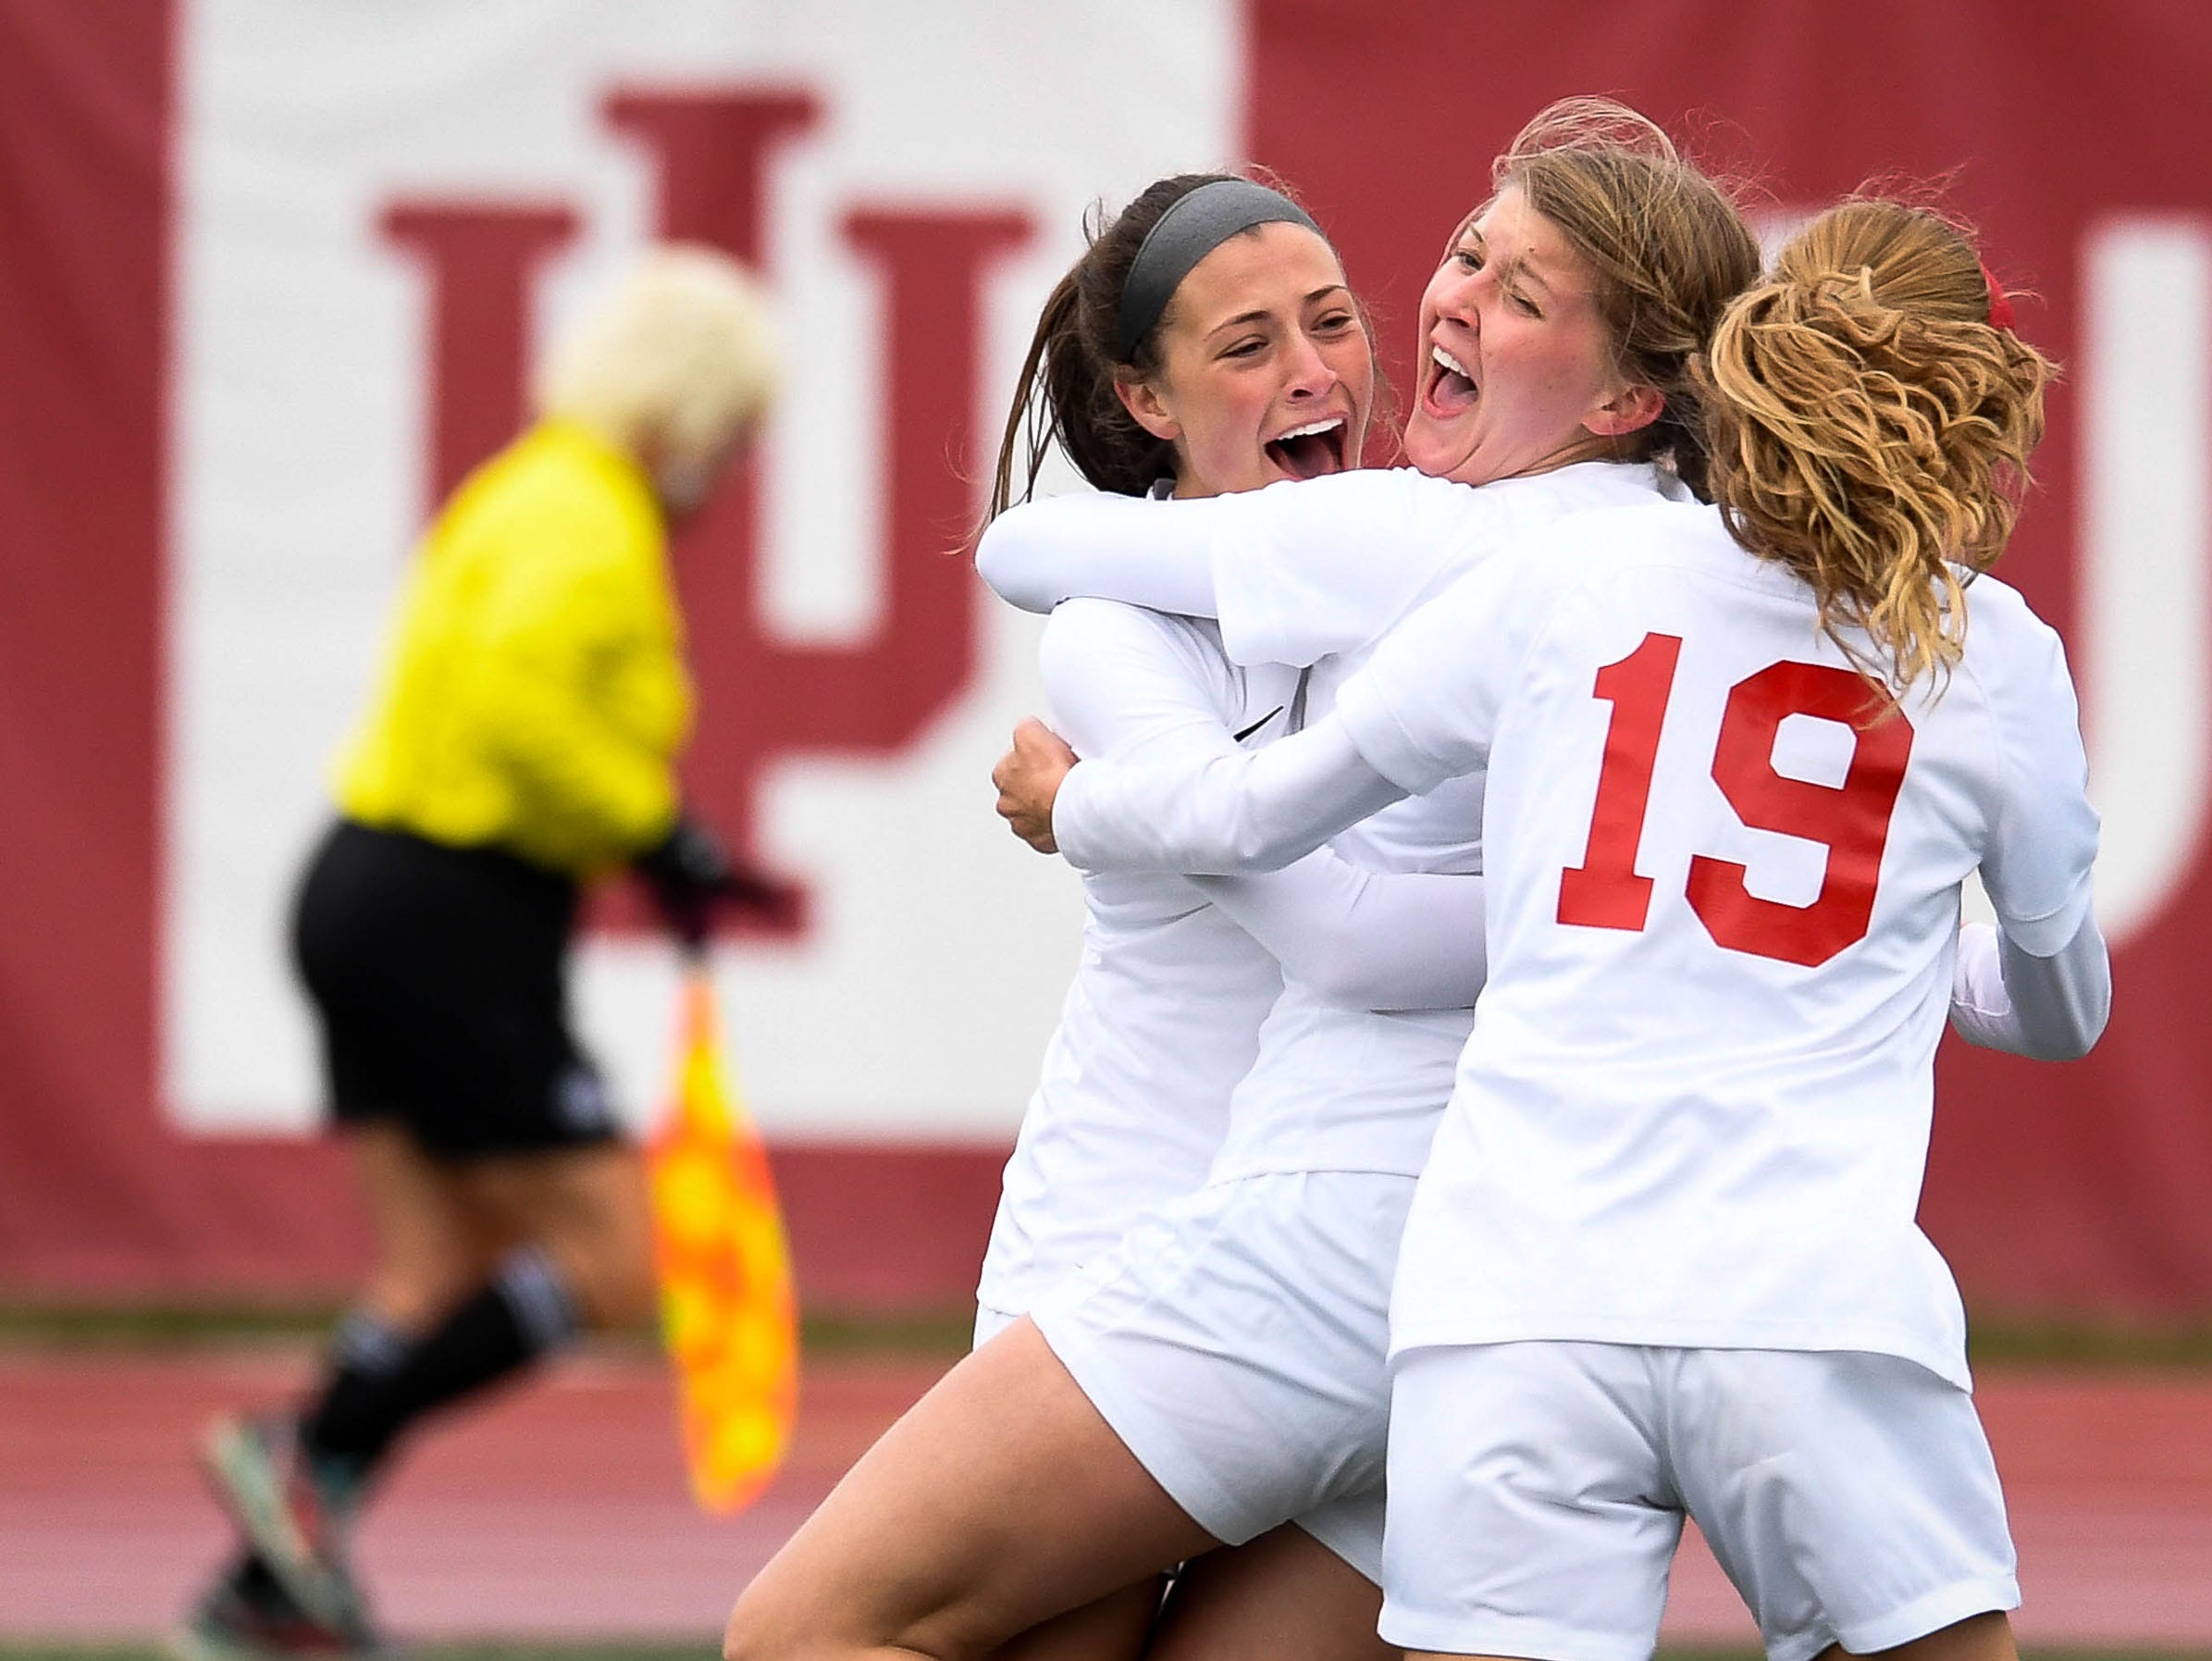 Mater Dei's Ellsa Bonnell (1) and Miranda Nosko (19) congratulate Mater Dei's Maddie Folz (14) for her game winning goal as the defending state champions Mater Dei Wildcats play the Wheeler Bearcats in the Class 1A state championship game in Indianapolis Saturday, October 27, 2018.